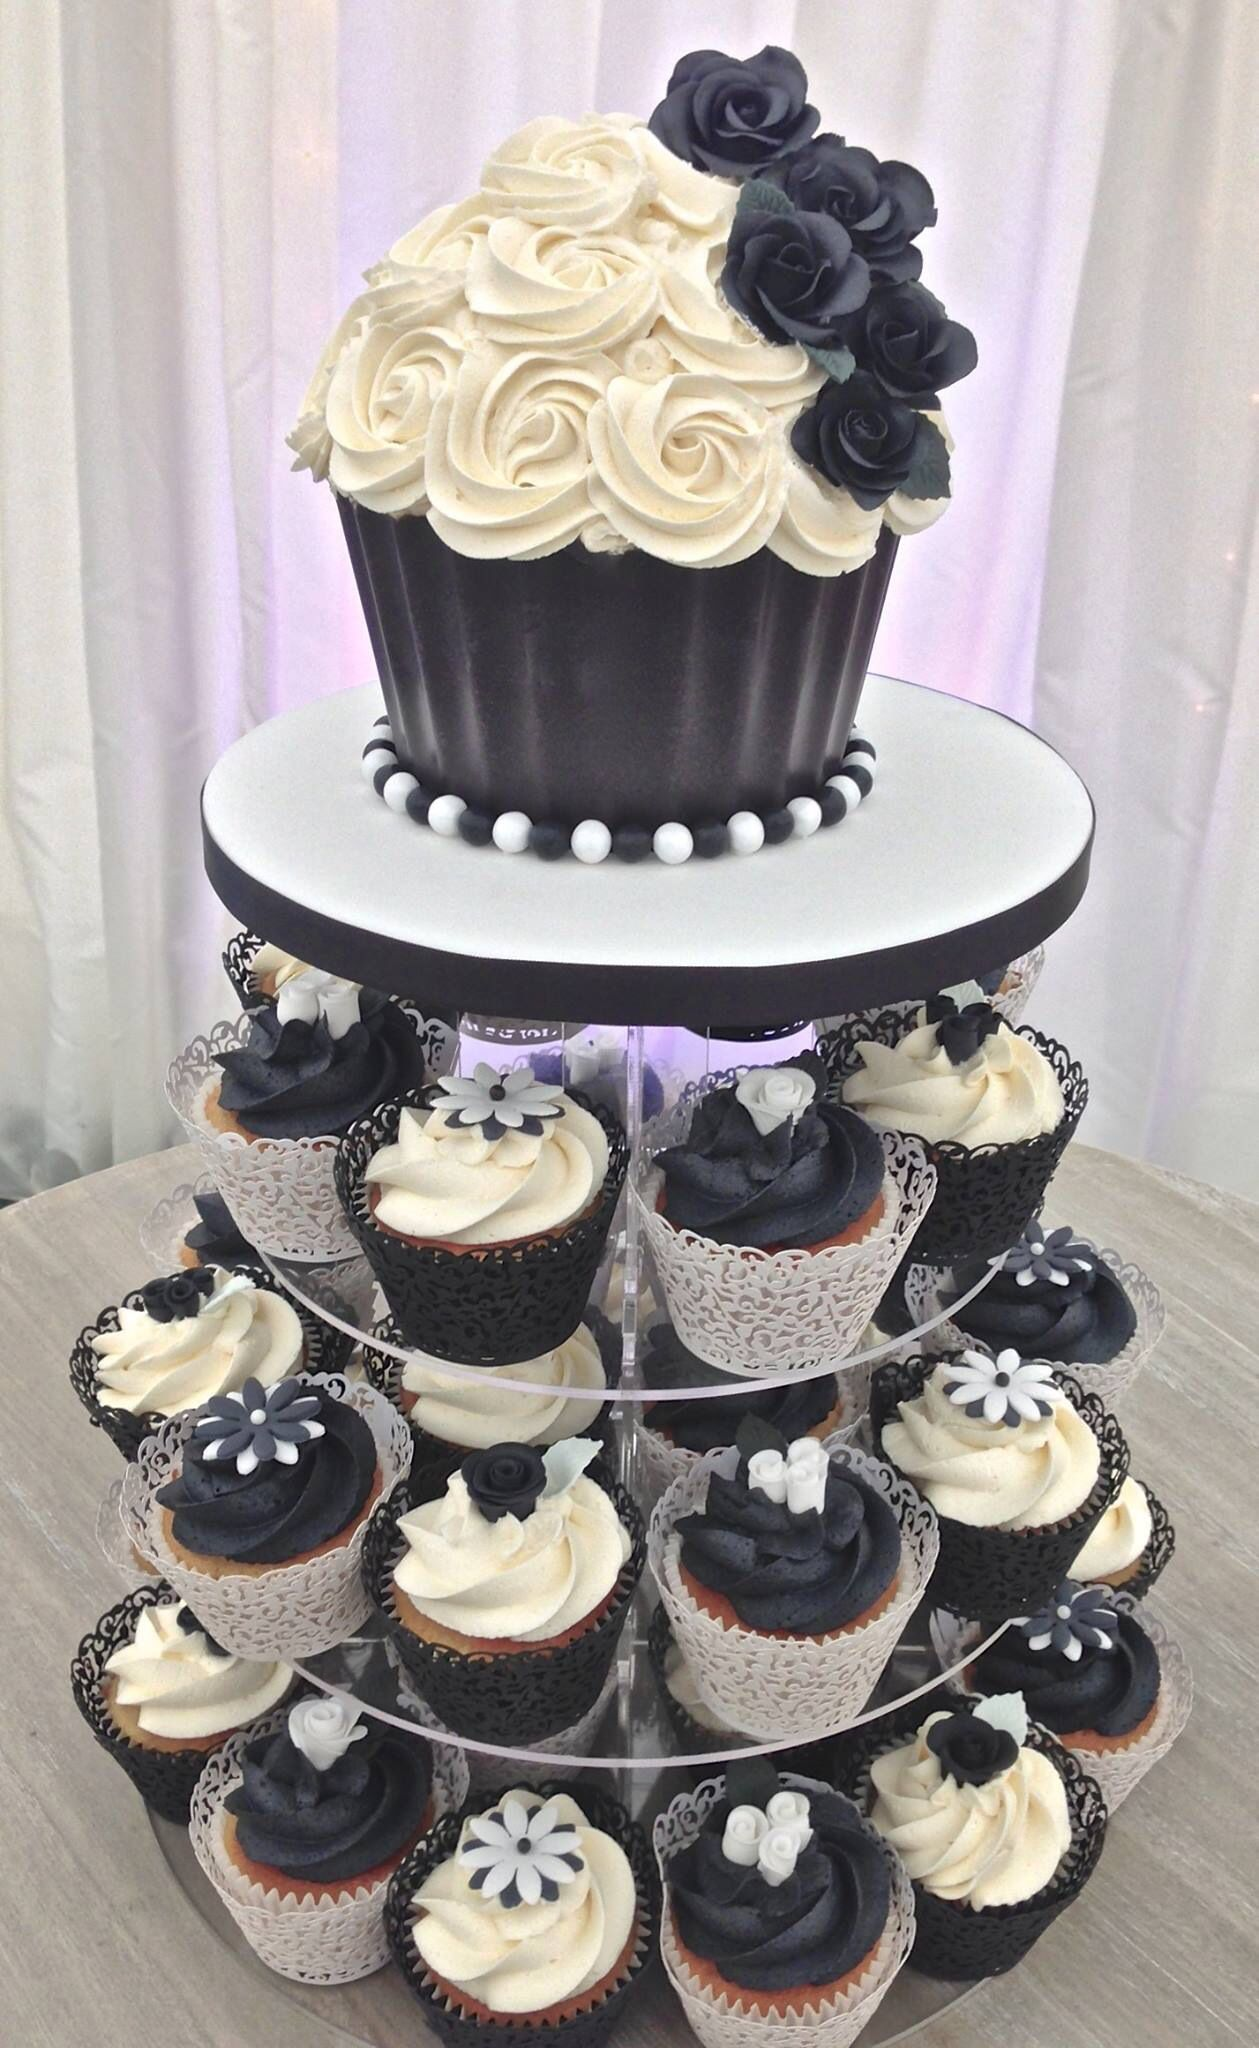 Black & white wedding cupcake tower with giant cupcake top